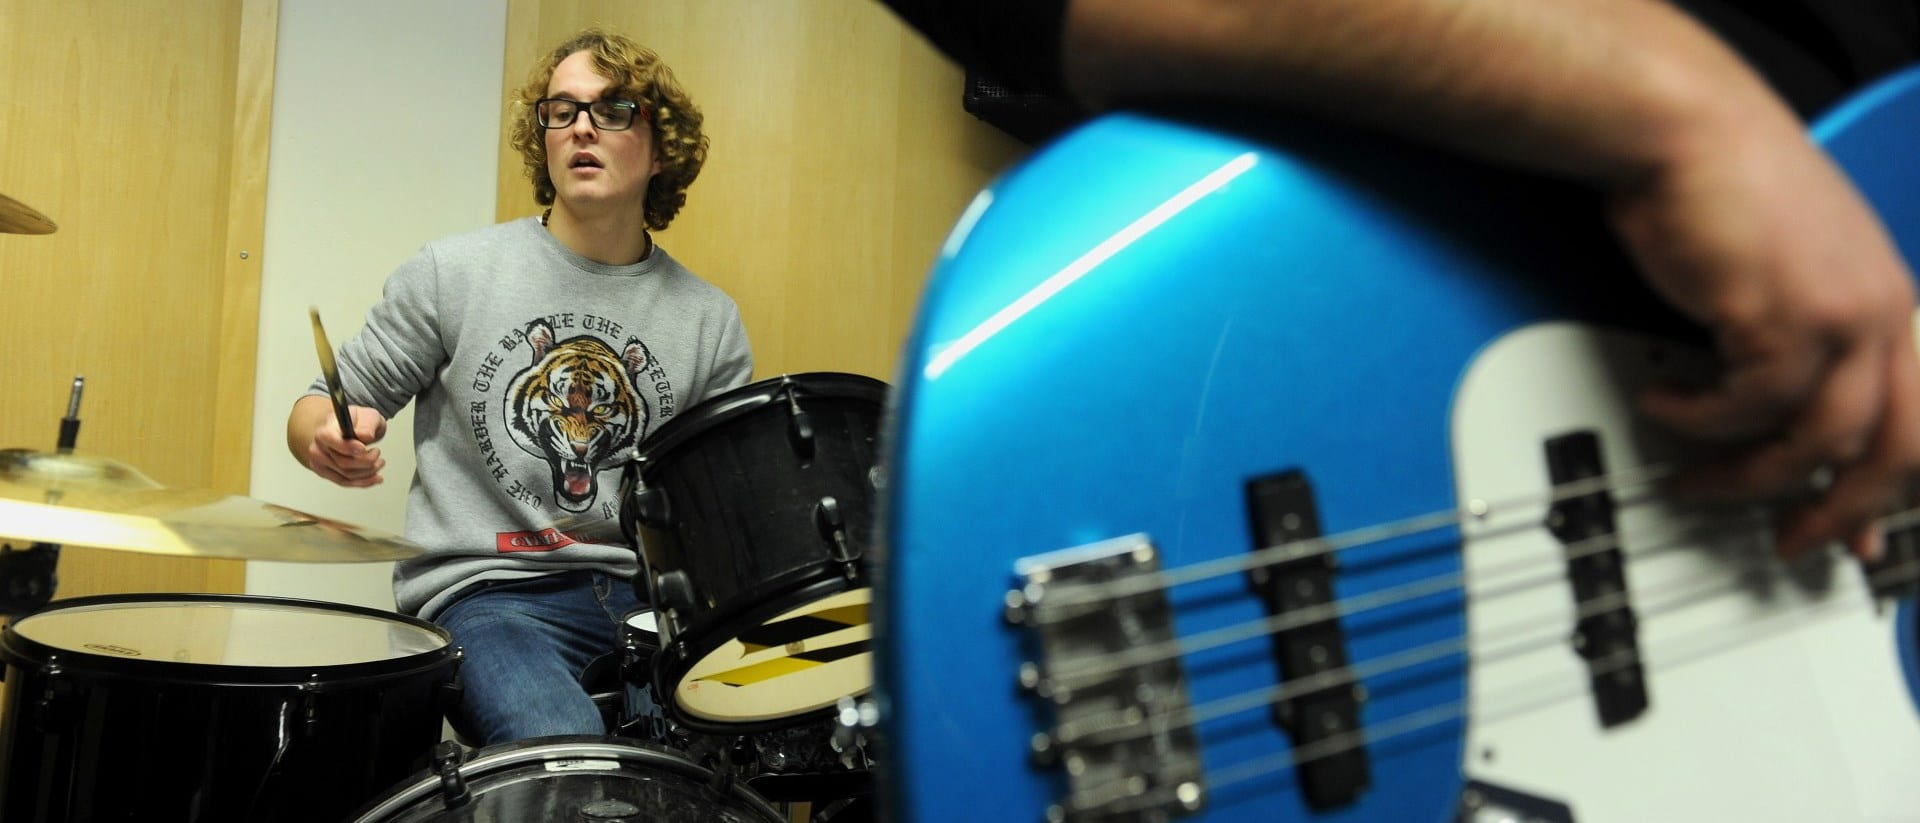 Music student plays drums in a recording studio.